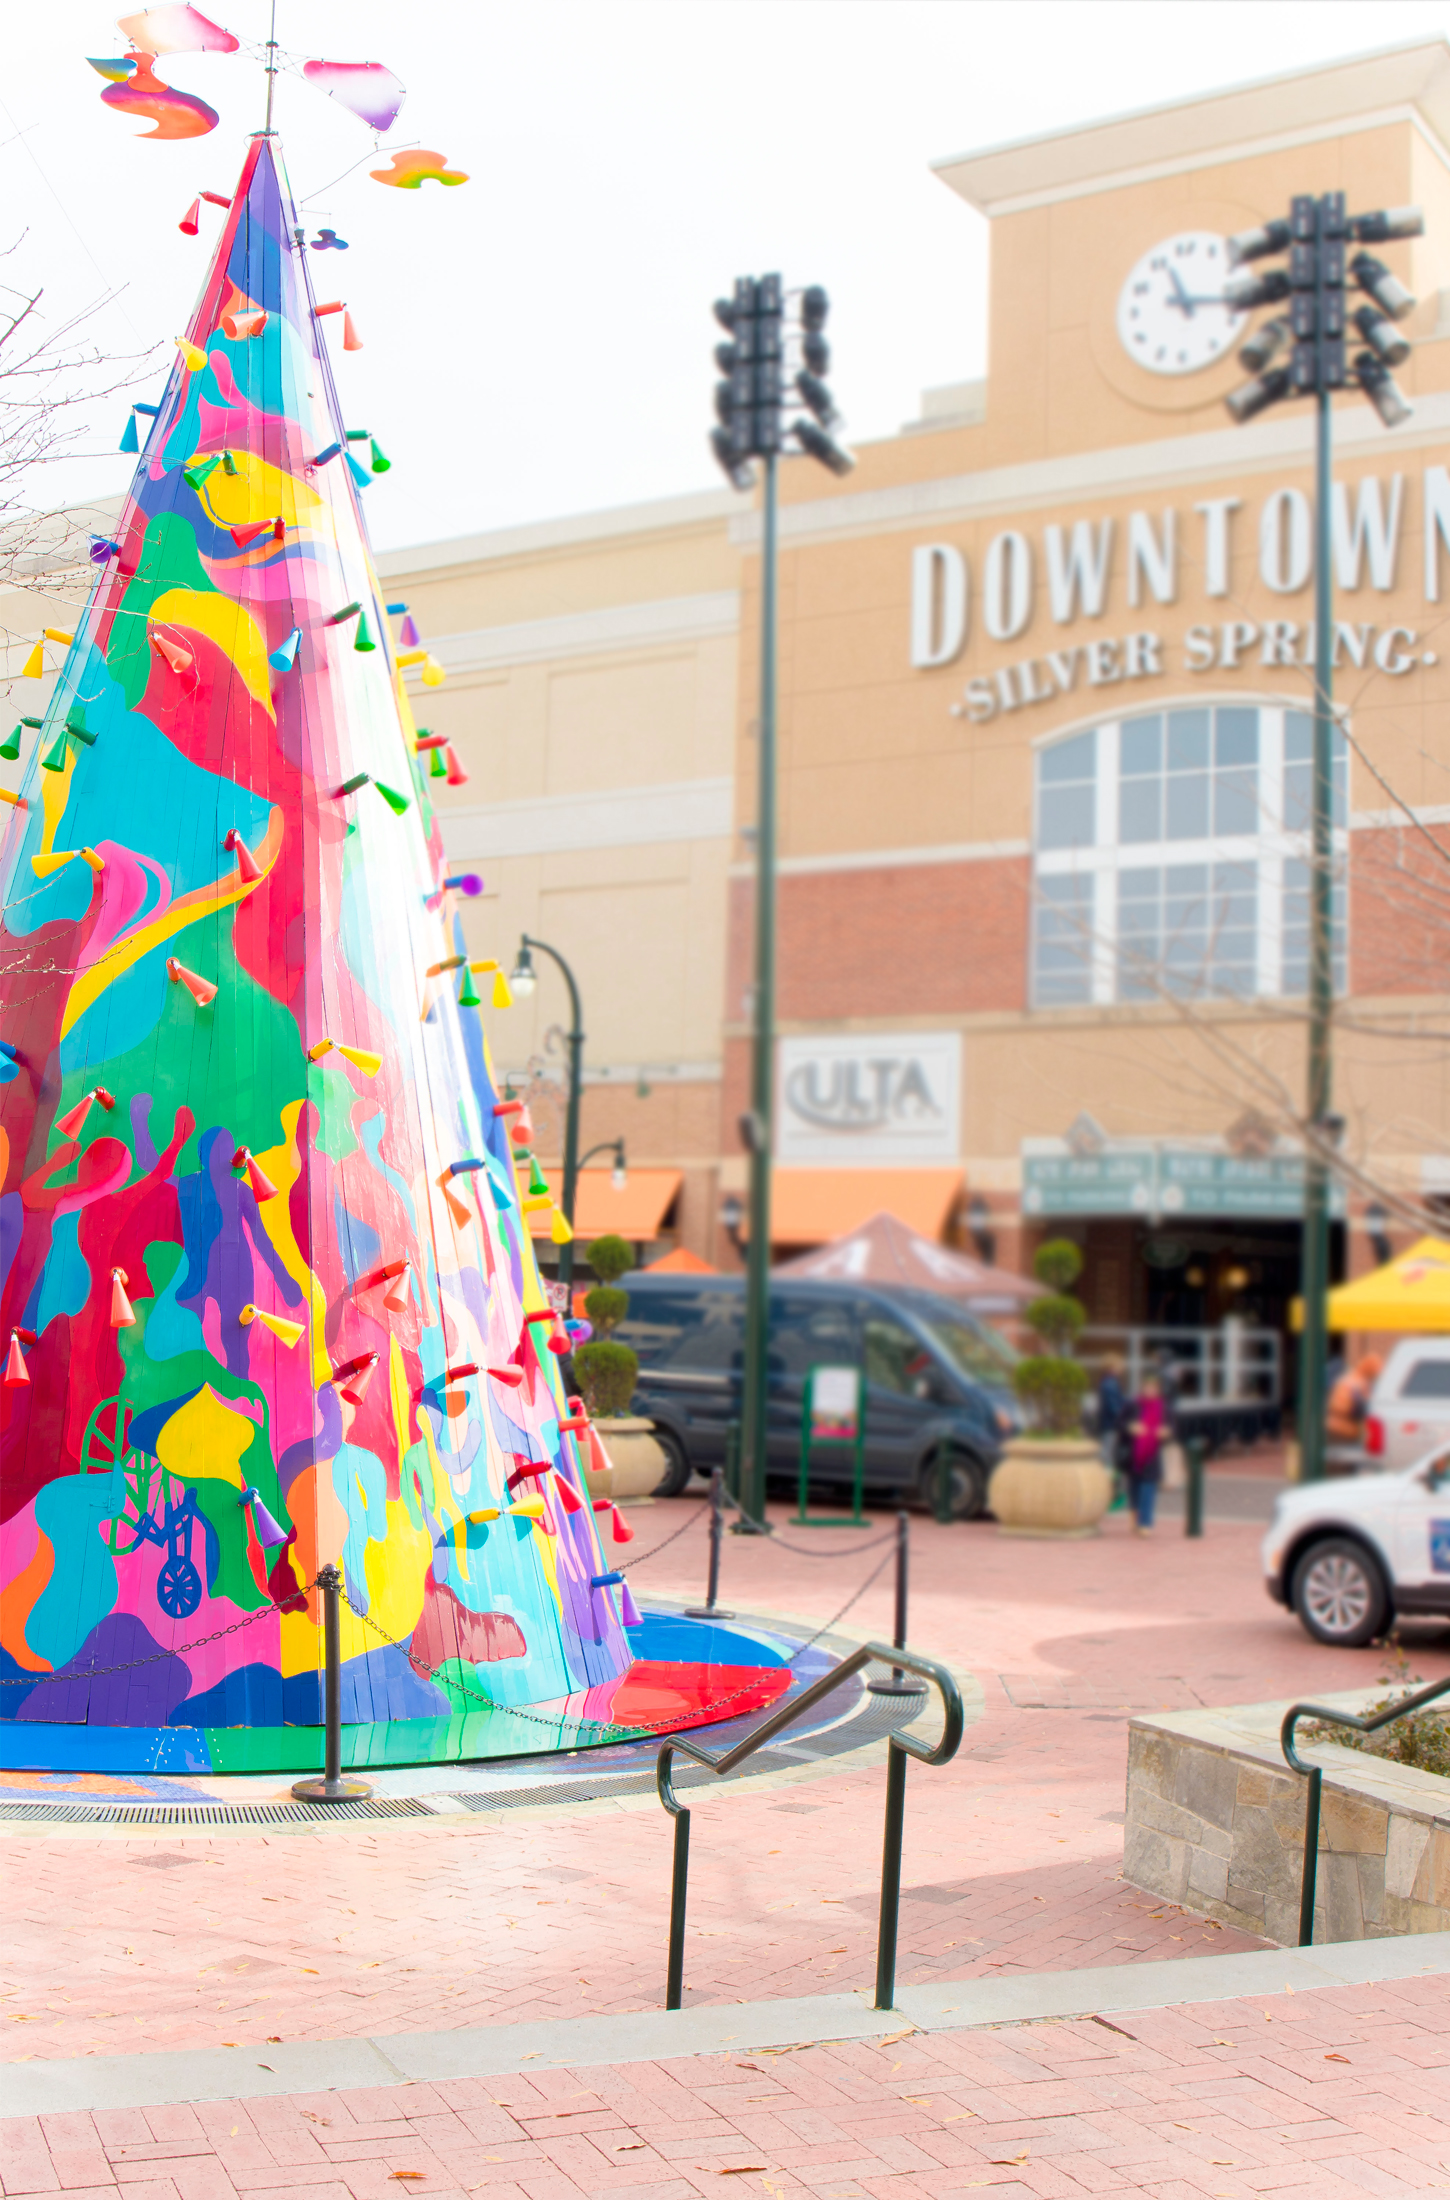 What's Haute Holiday Gift Guide and Giveaway with Downtown Silver Spring - Christmas tree 2018 - CommUNITY Tree